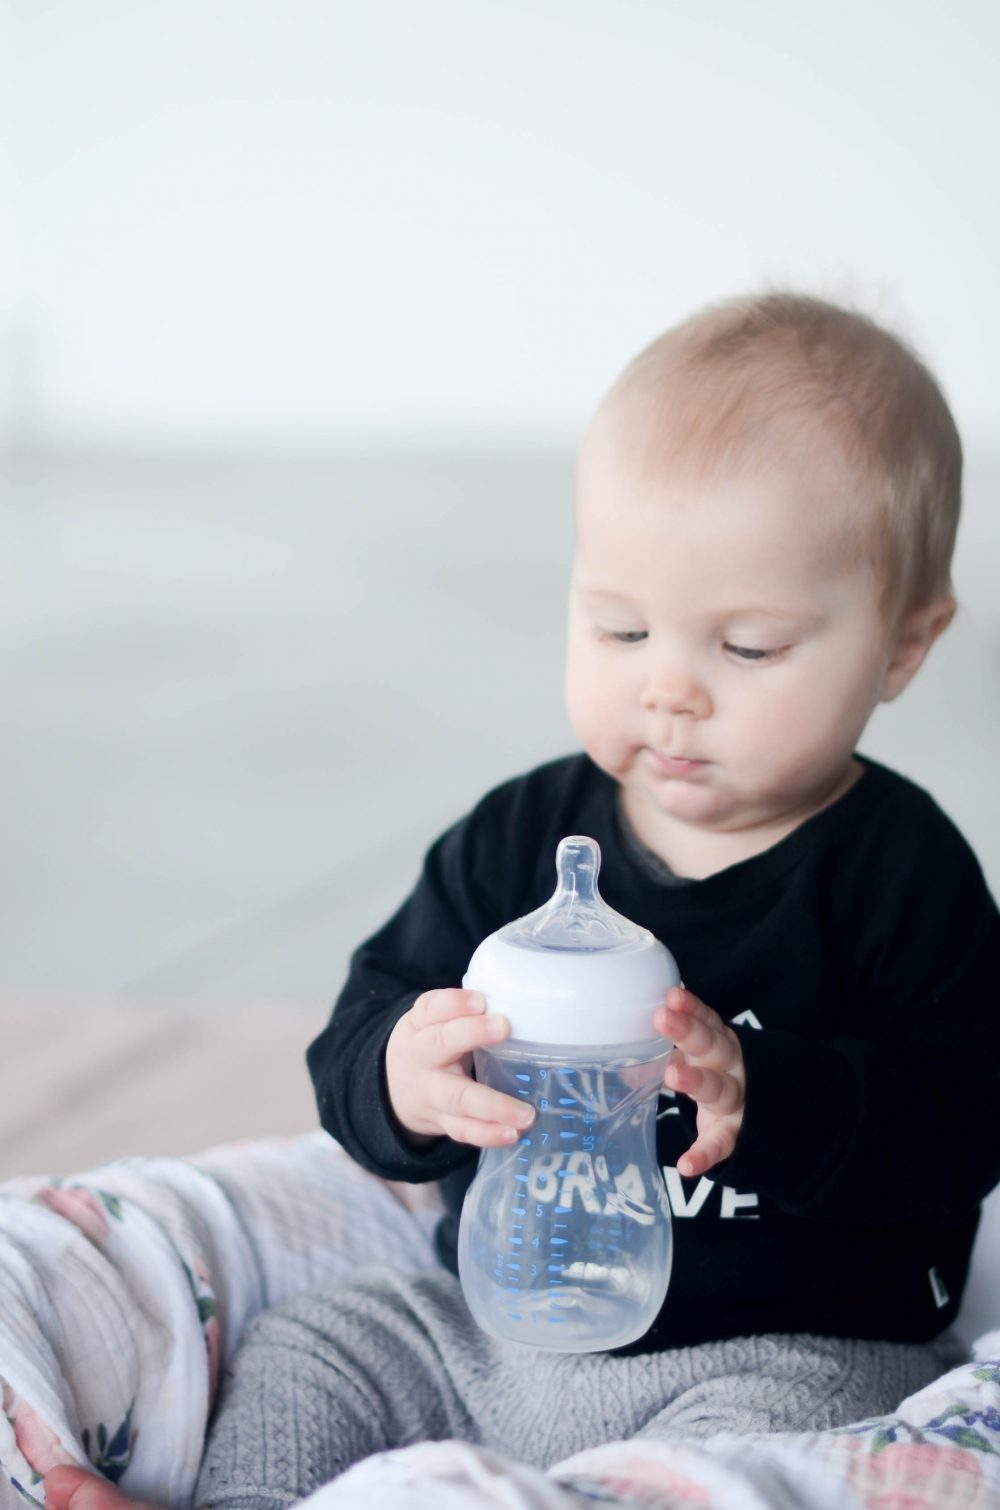 5 Tips for Introducing Bottles to Babies